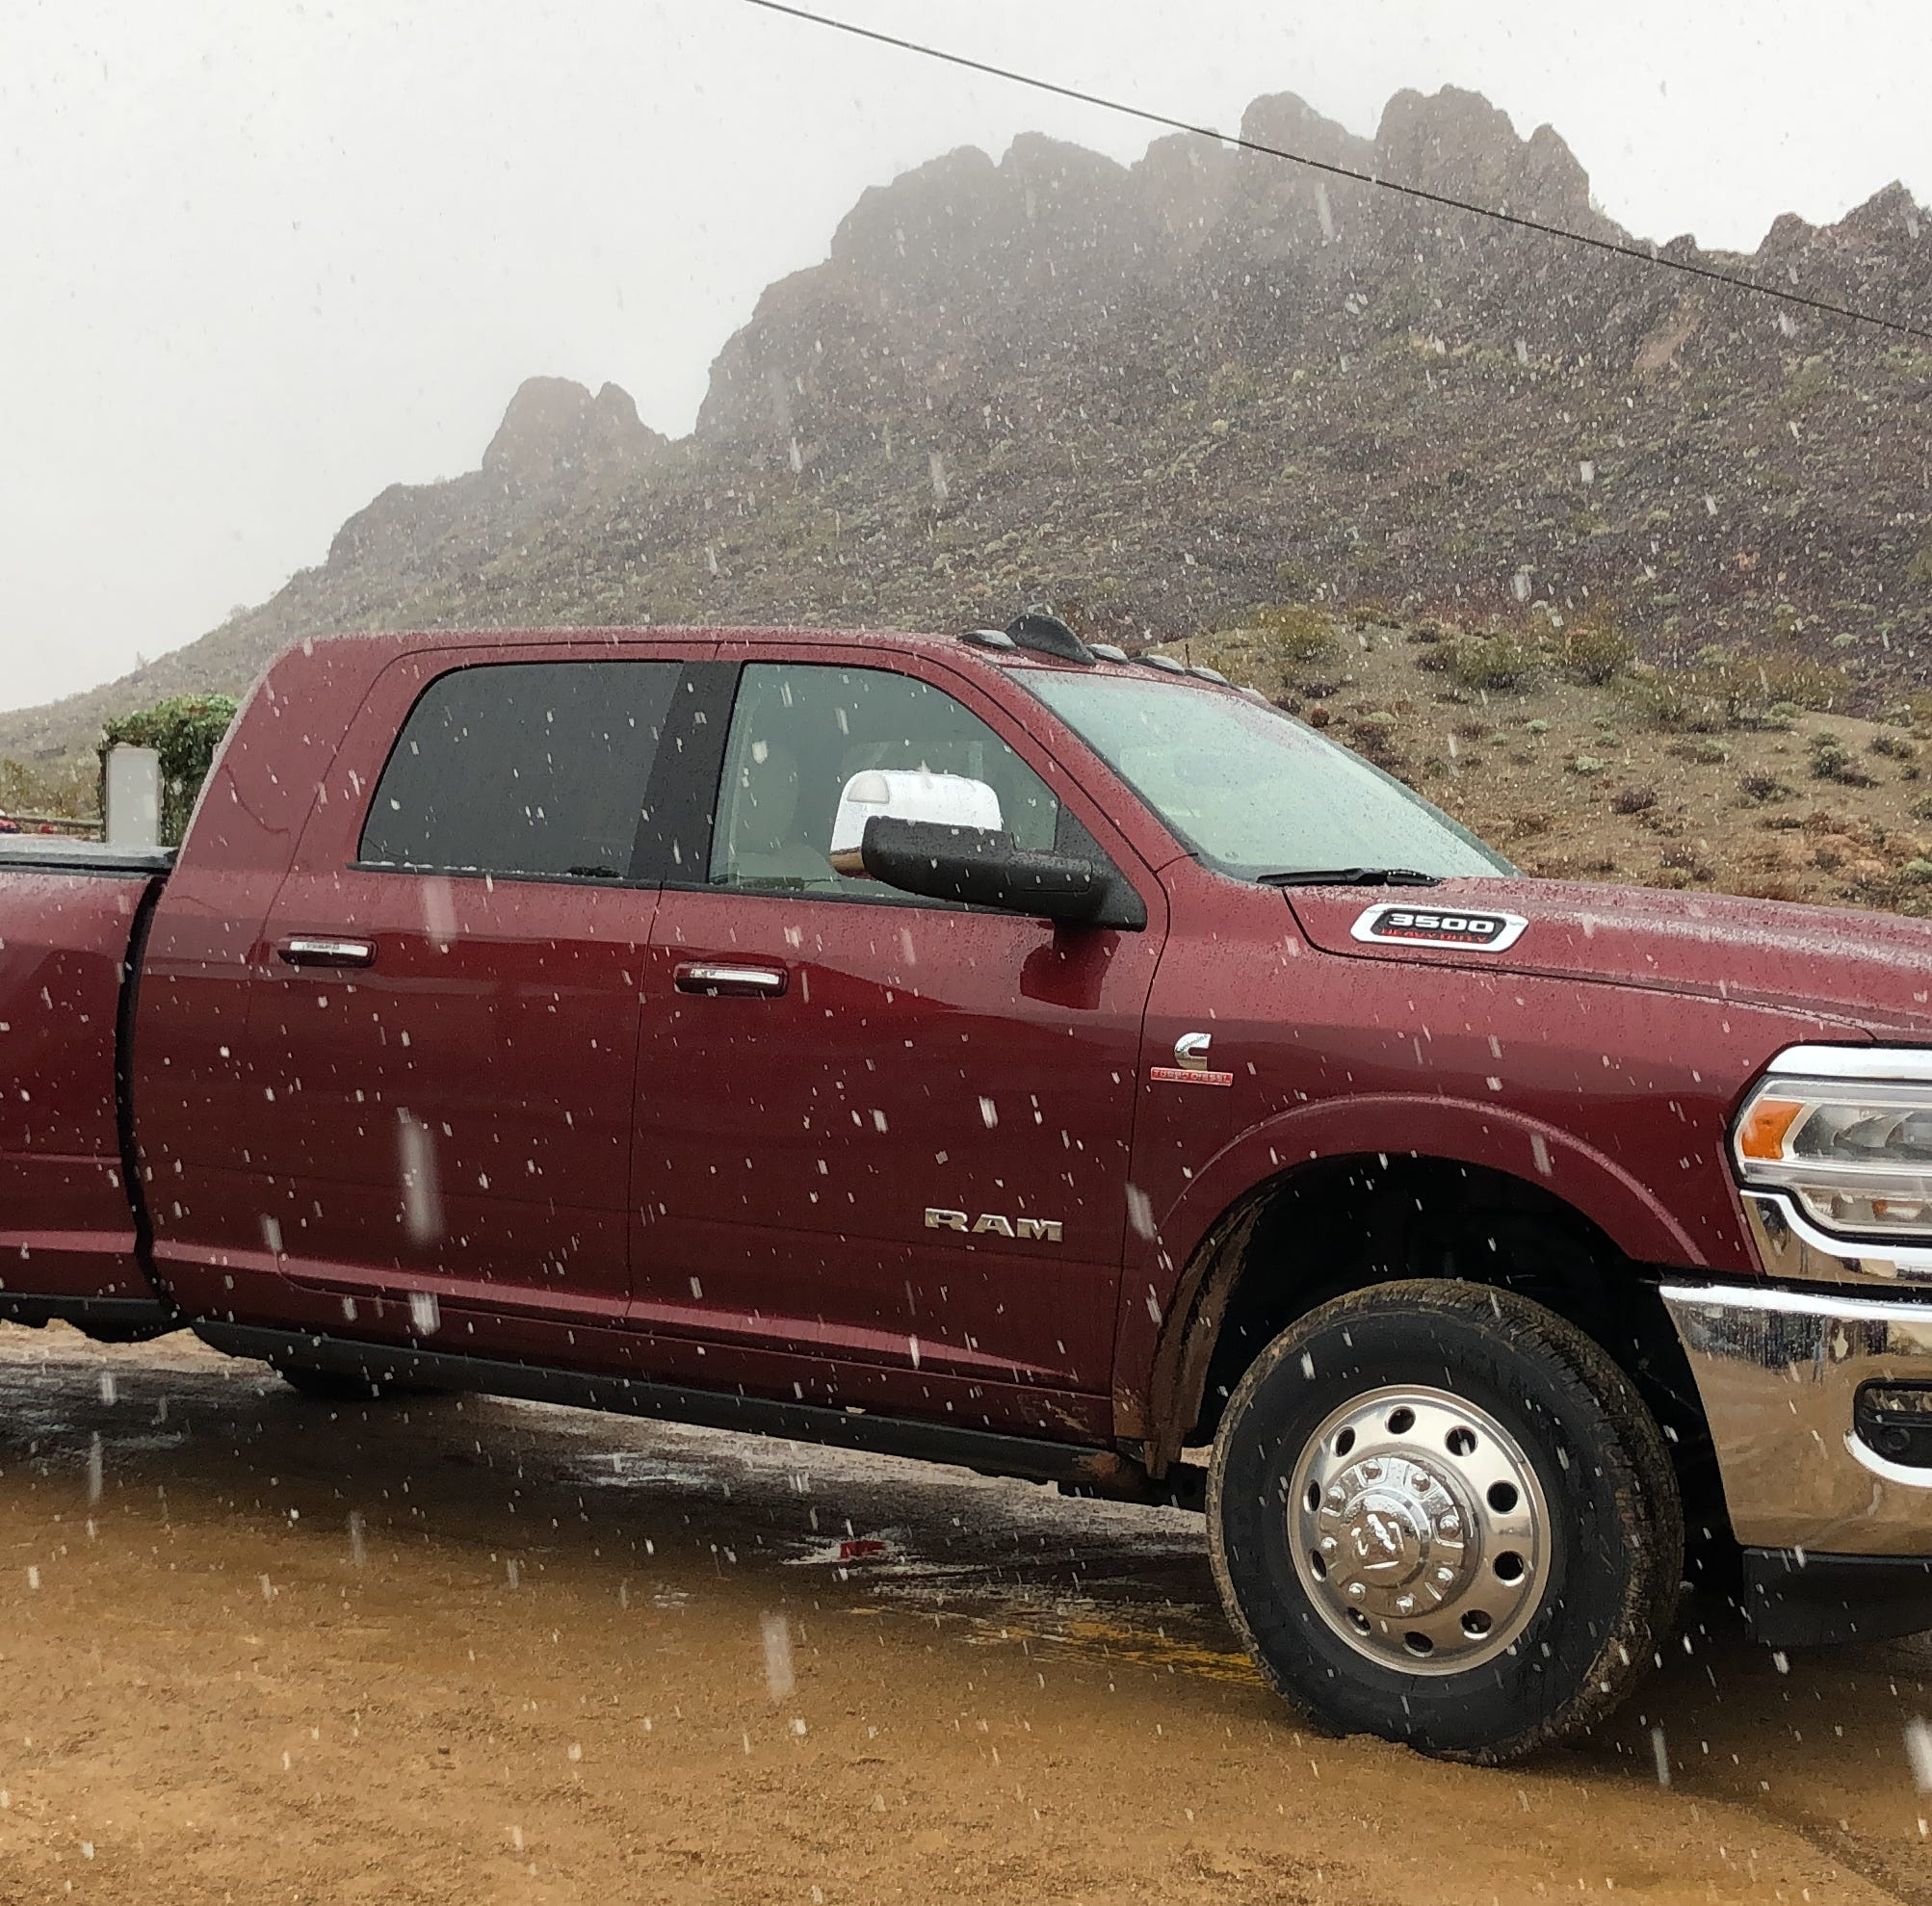 2019 Ram 2500, 3500 pickups bring power, luxury to farms, work sites